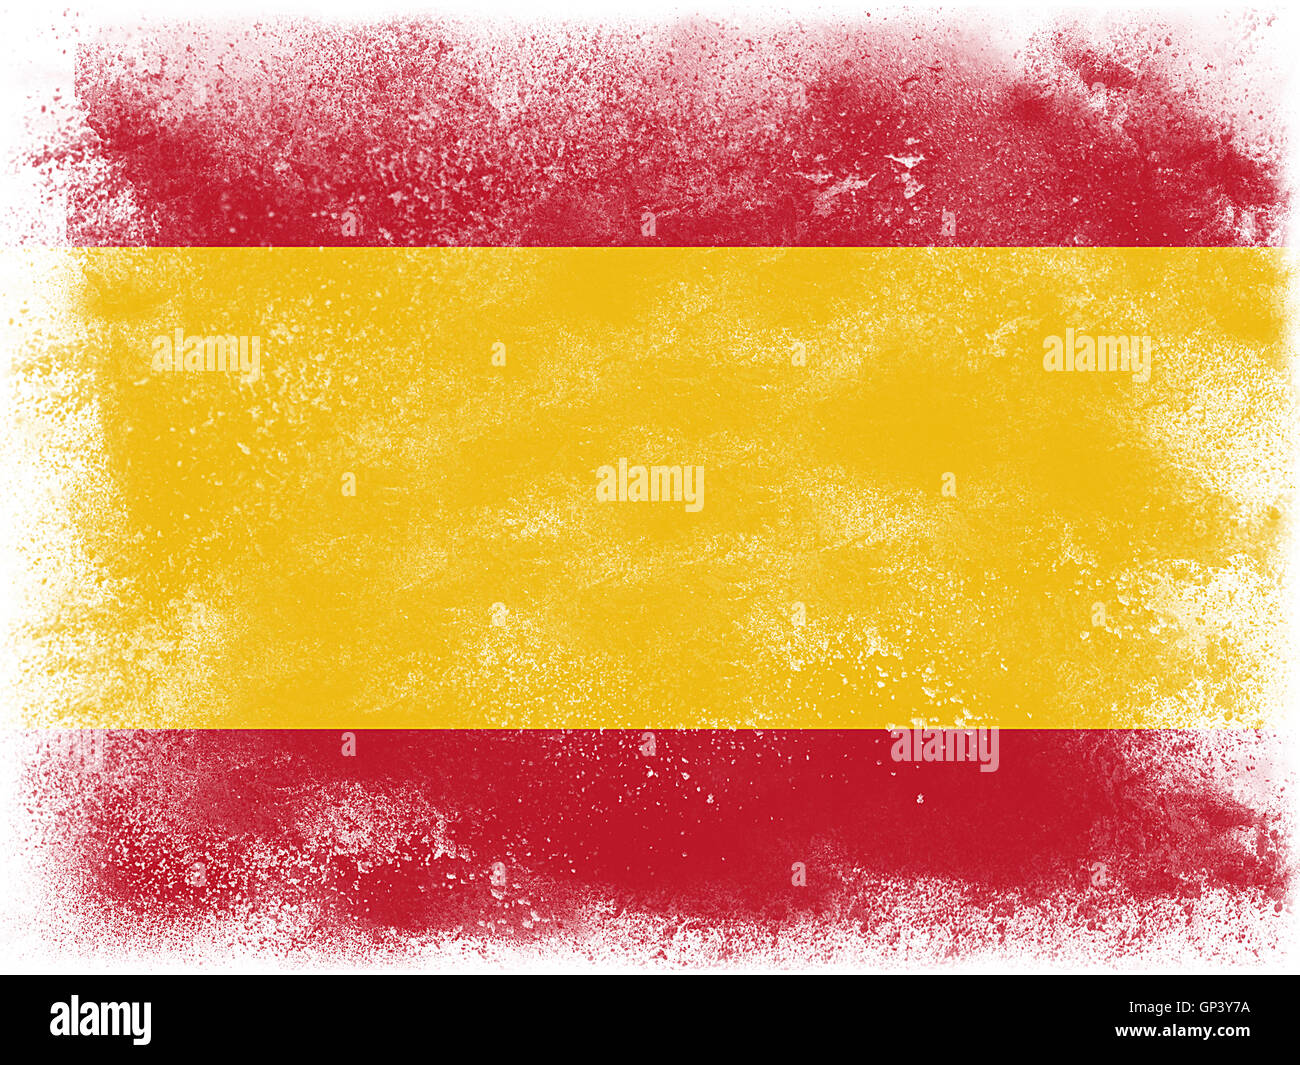 Powder paint exploding in colors of spain flag isolated on white powder paint exploding in colors of spain flag isolated on white background abstract particles explosion voltagebd Gallery